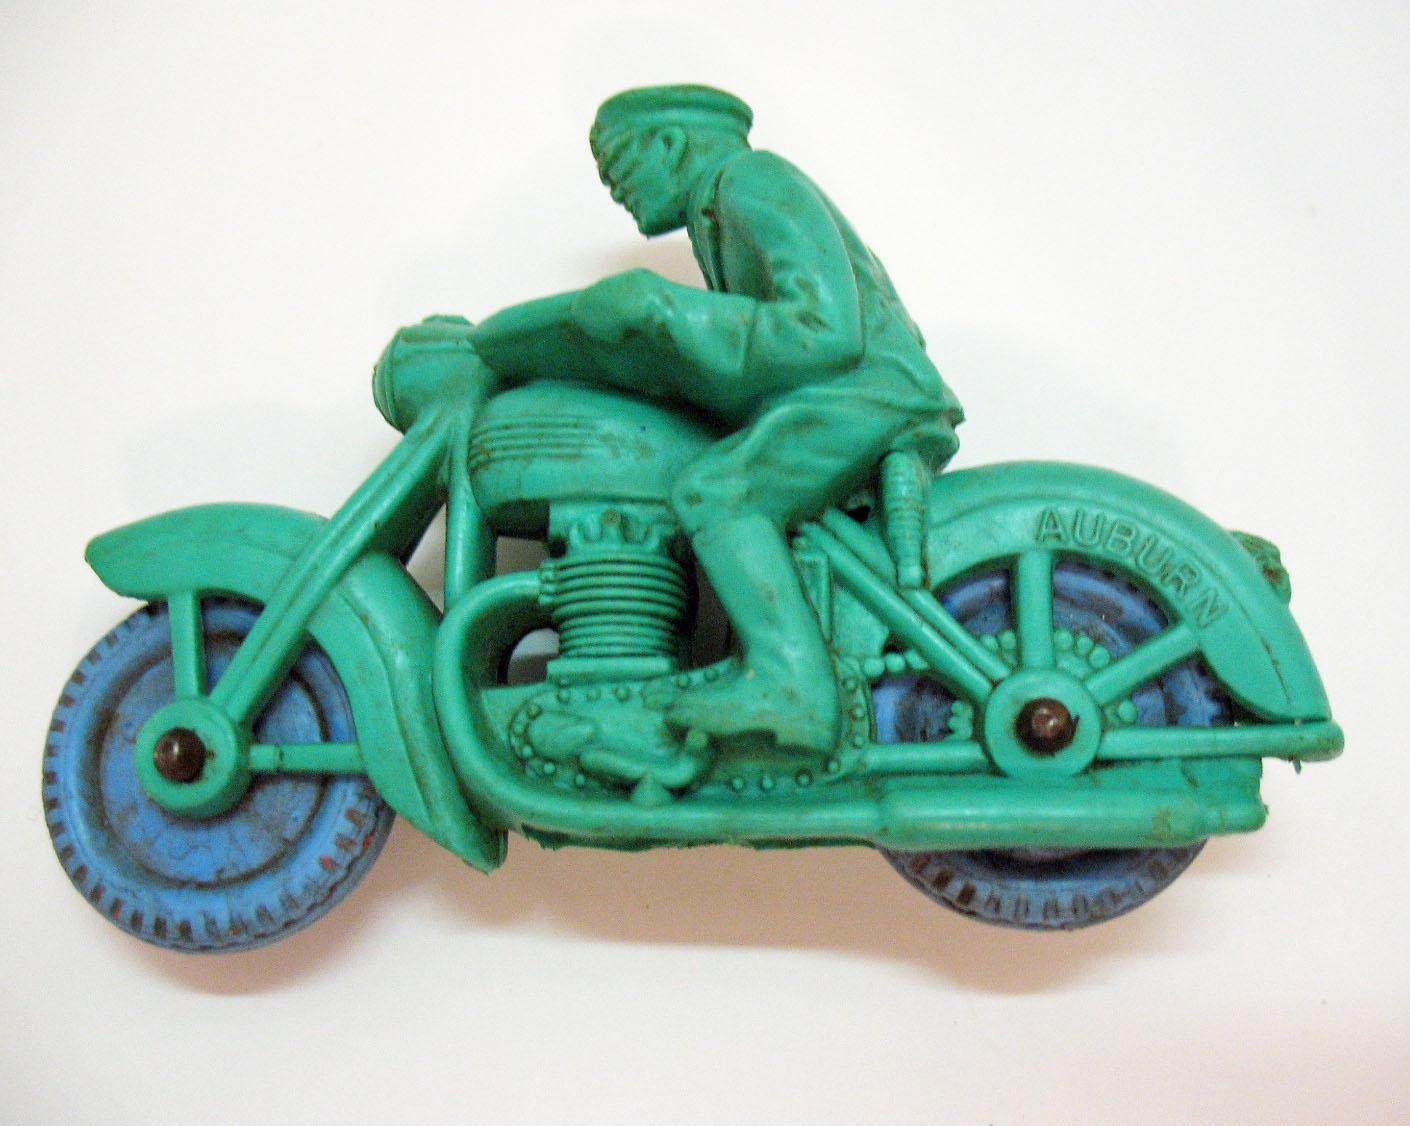 Vintage Auburn Rubber Toy Co Vinyl Police Motorcycle Toy